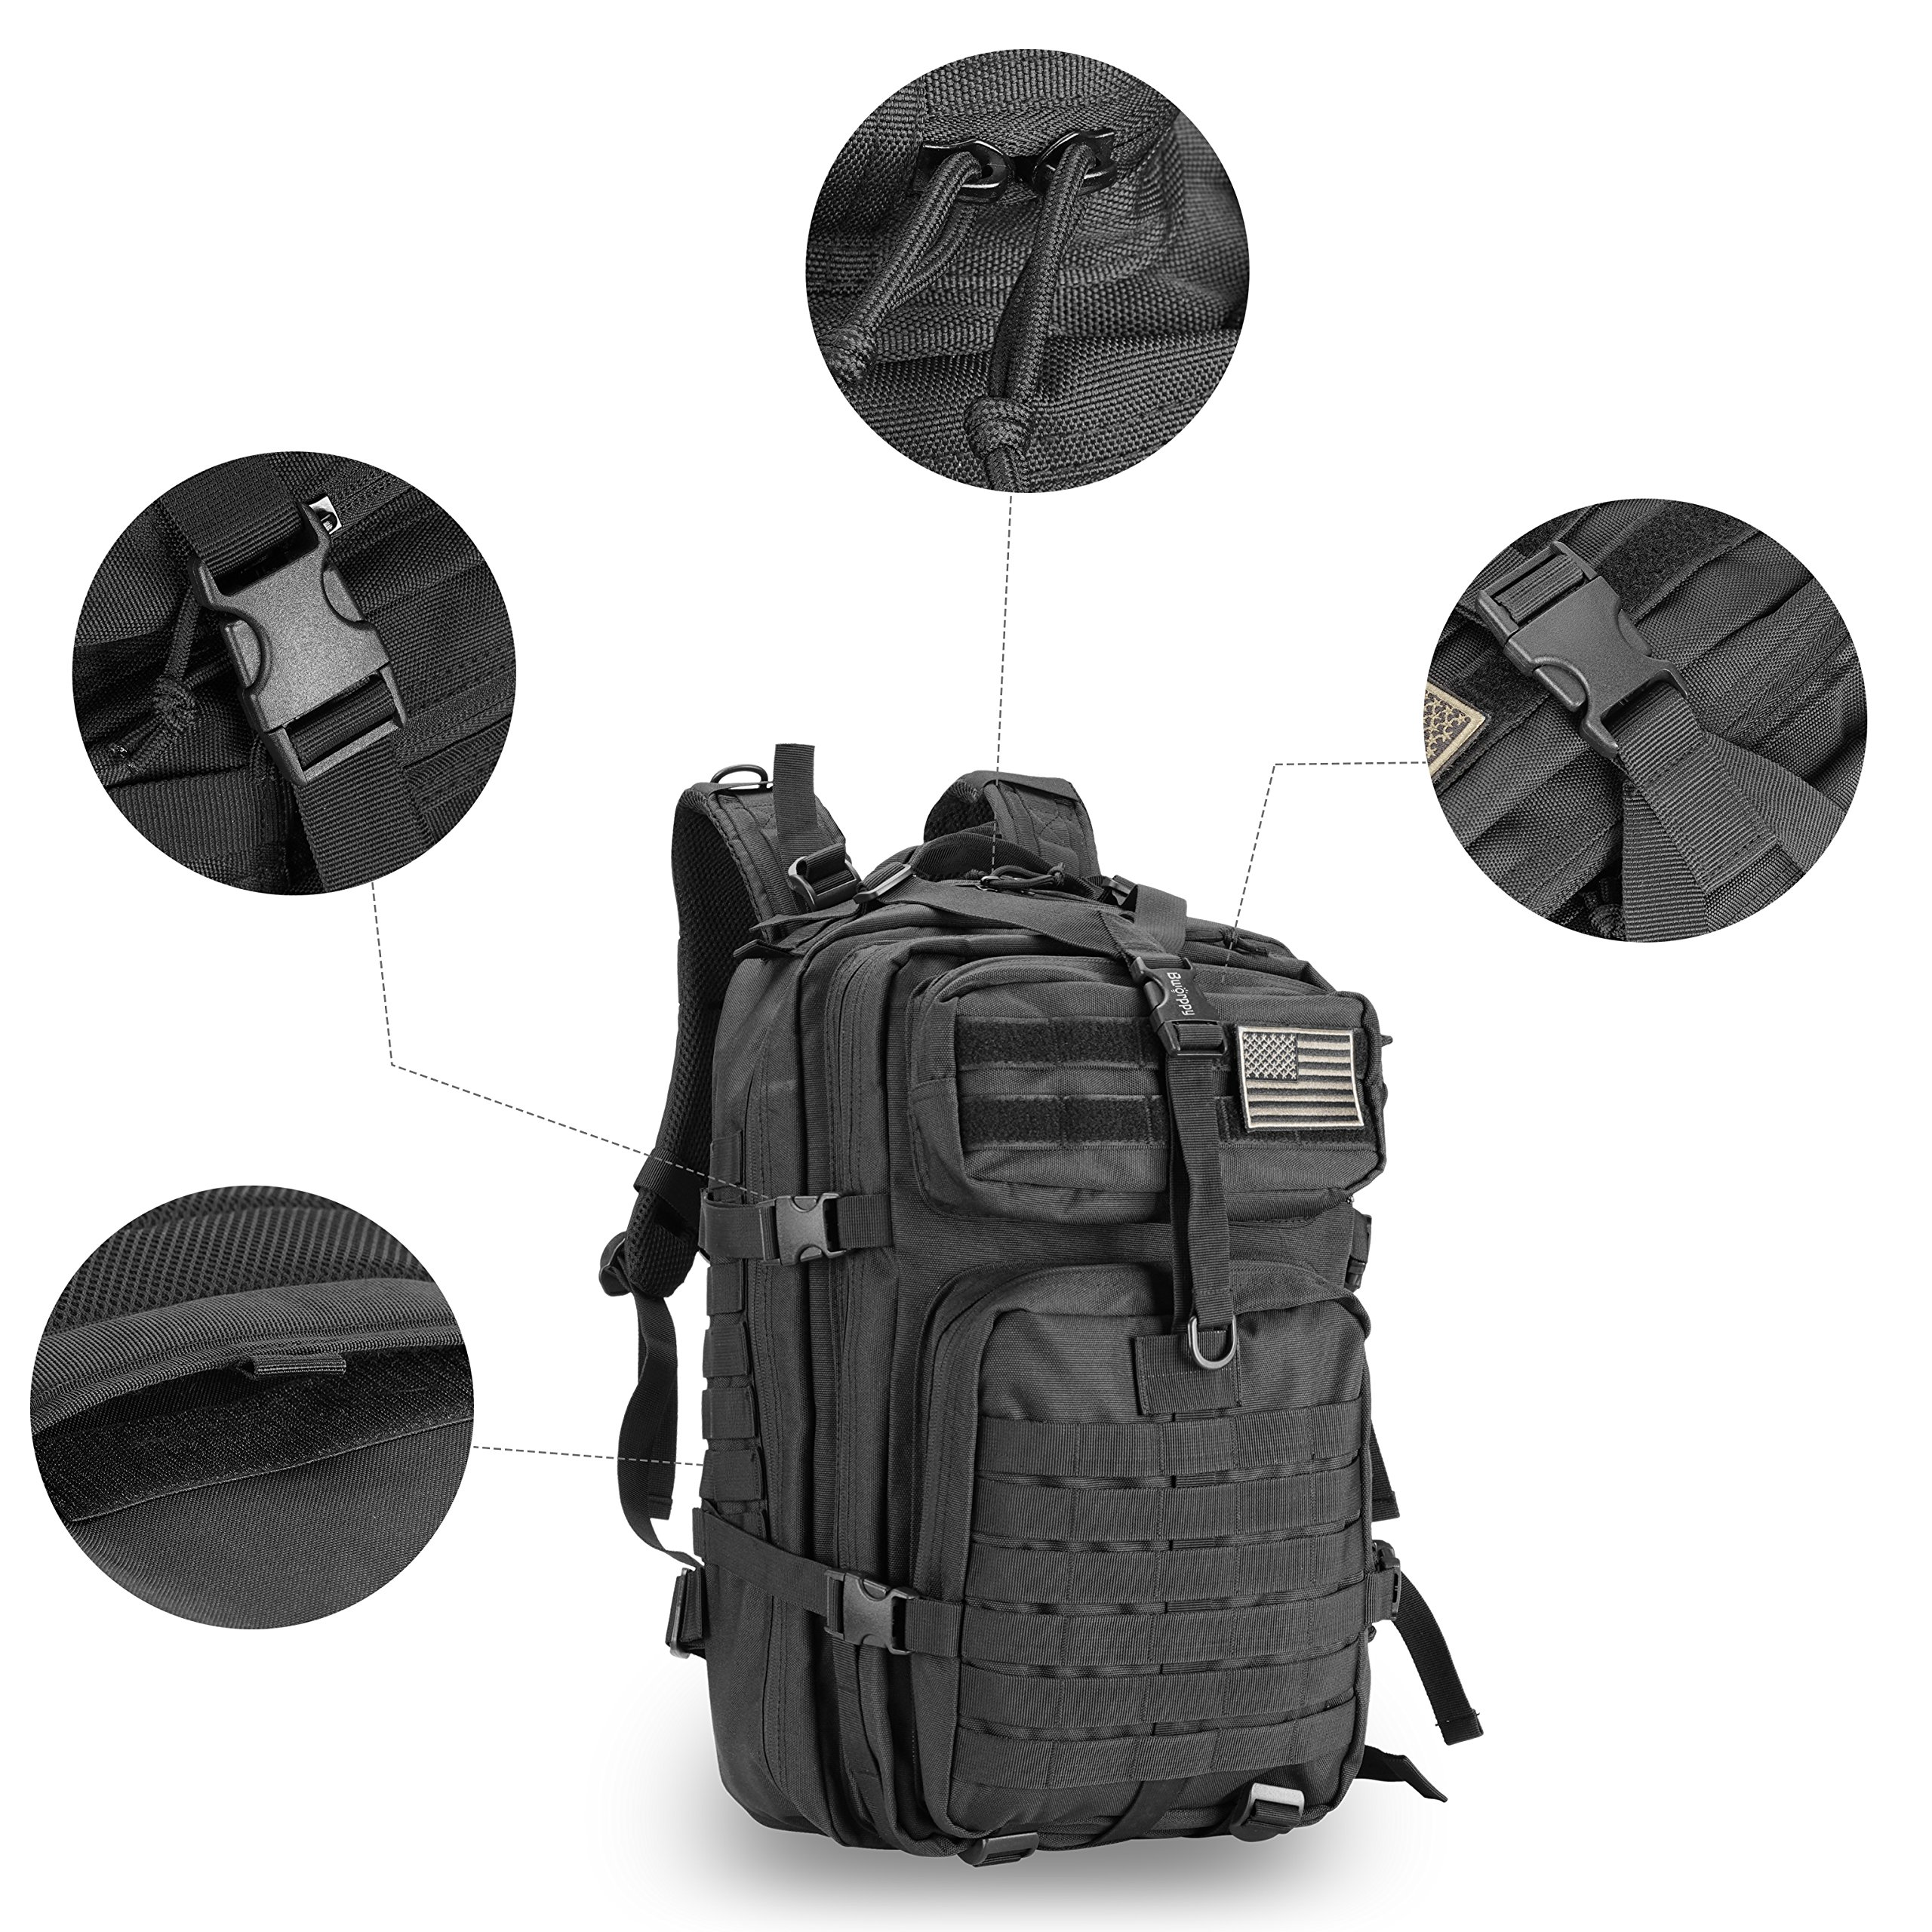 Bworppy Military Tactical Backpack, 40L Outdoor Rucksack, Waterproof 900D Oxford Fabric Assault Pack for Outdoor Hiking Camping Trekking Hunting by Bworppy (Image #4)